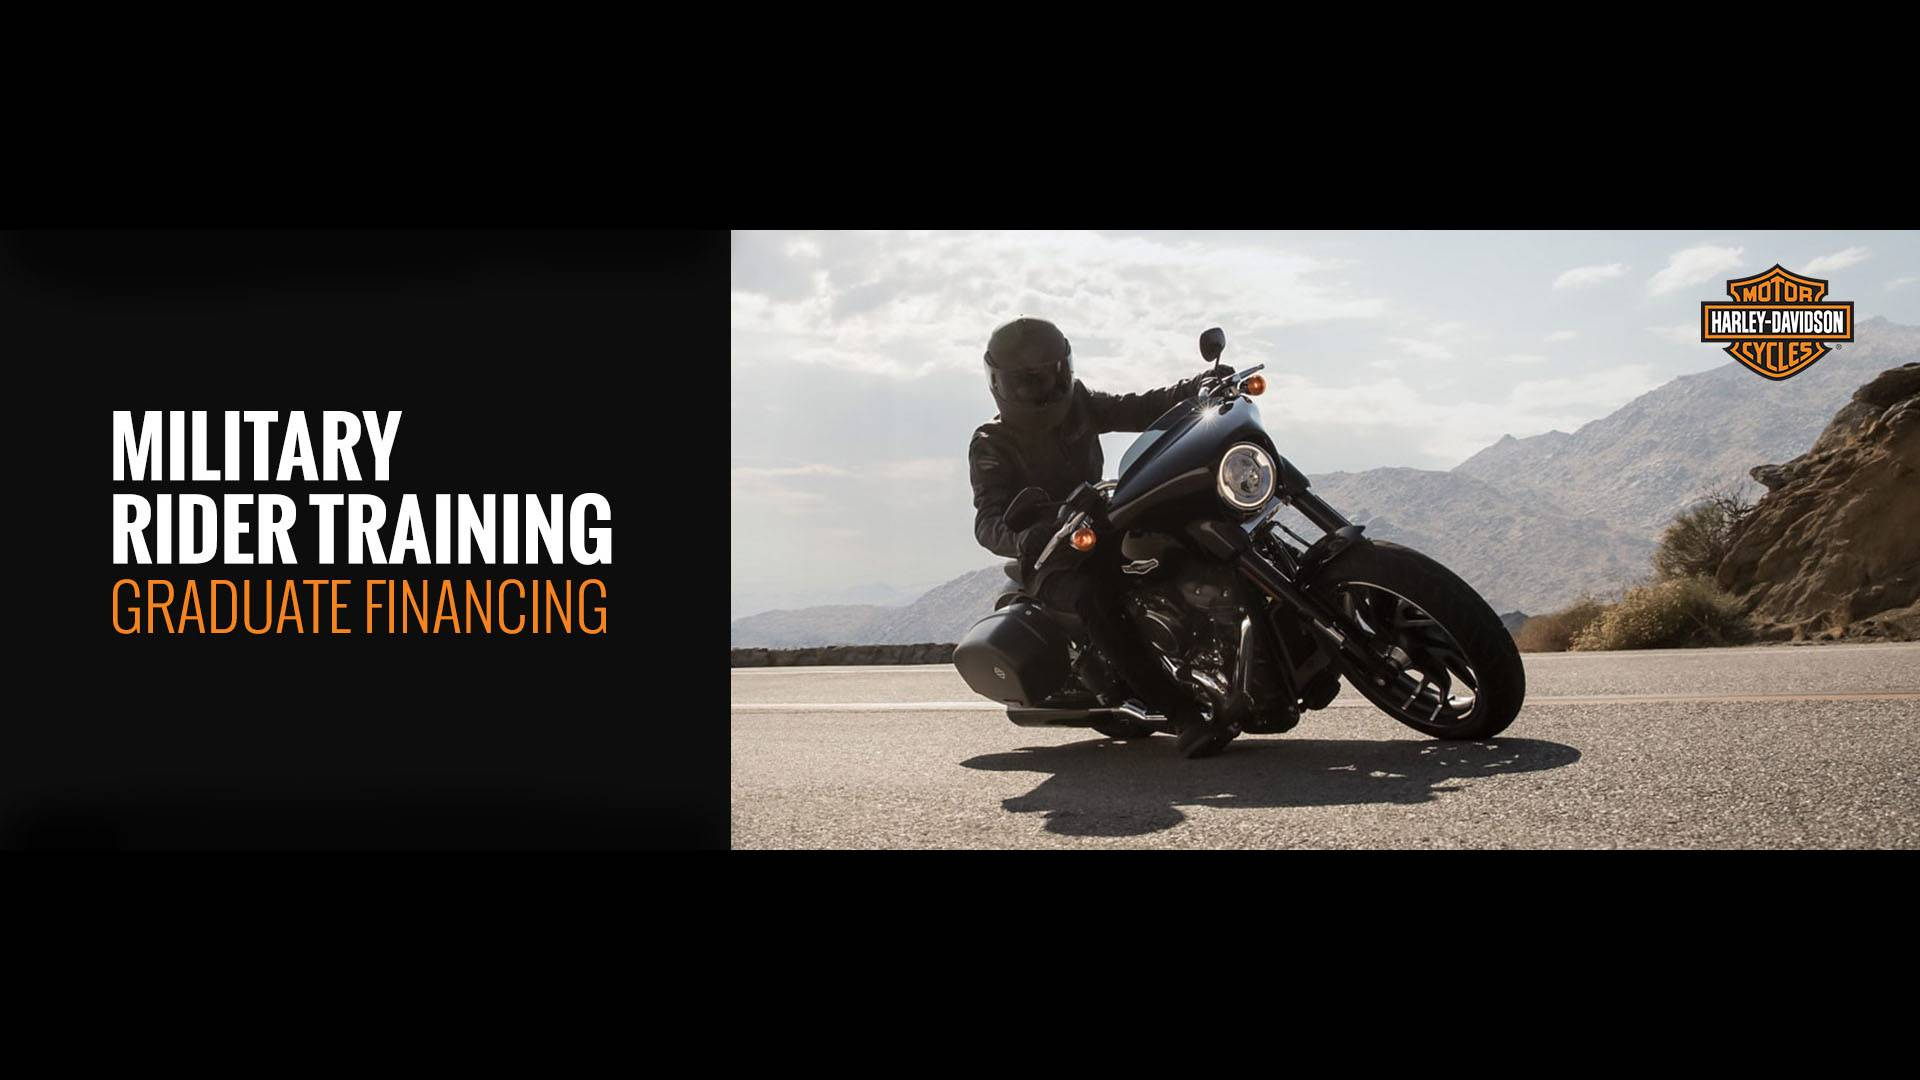 Harley-Davidson - Military Rider Training Graduate Financing